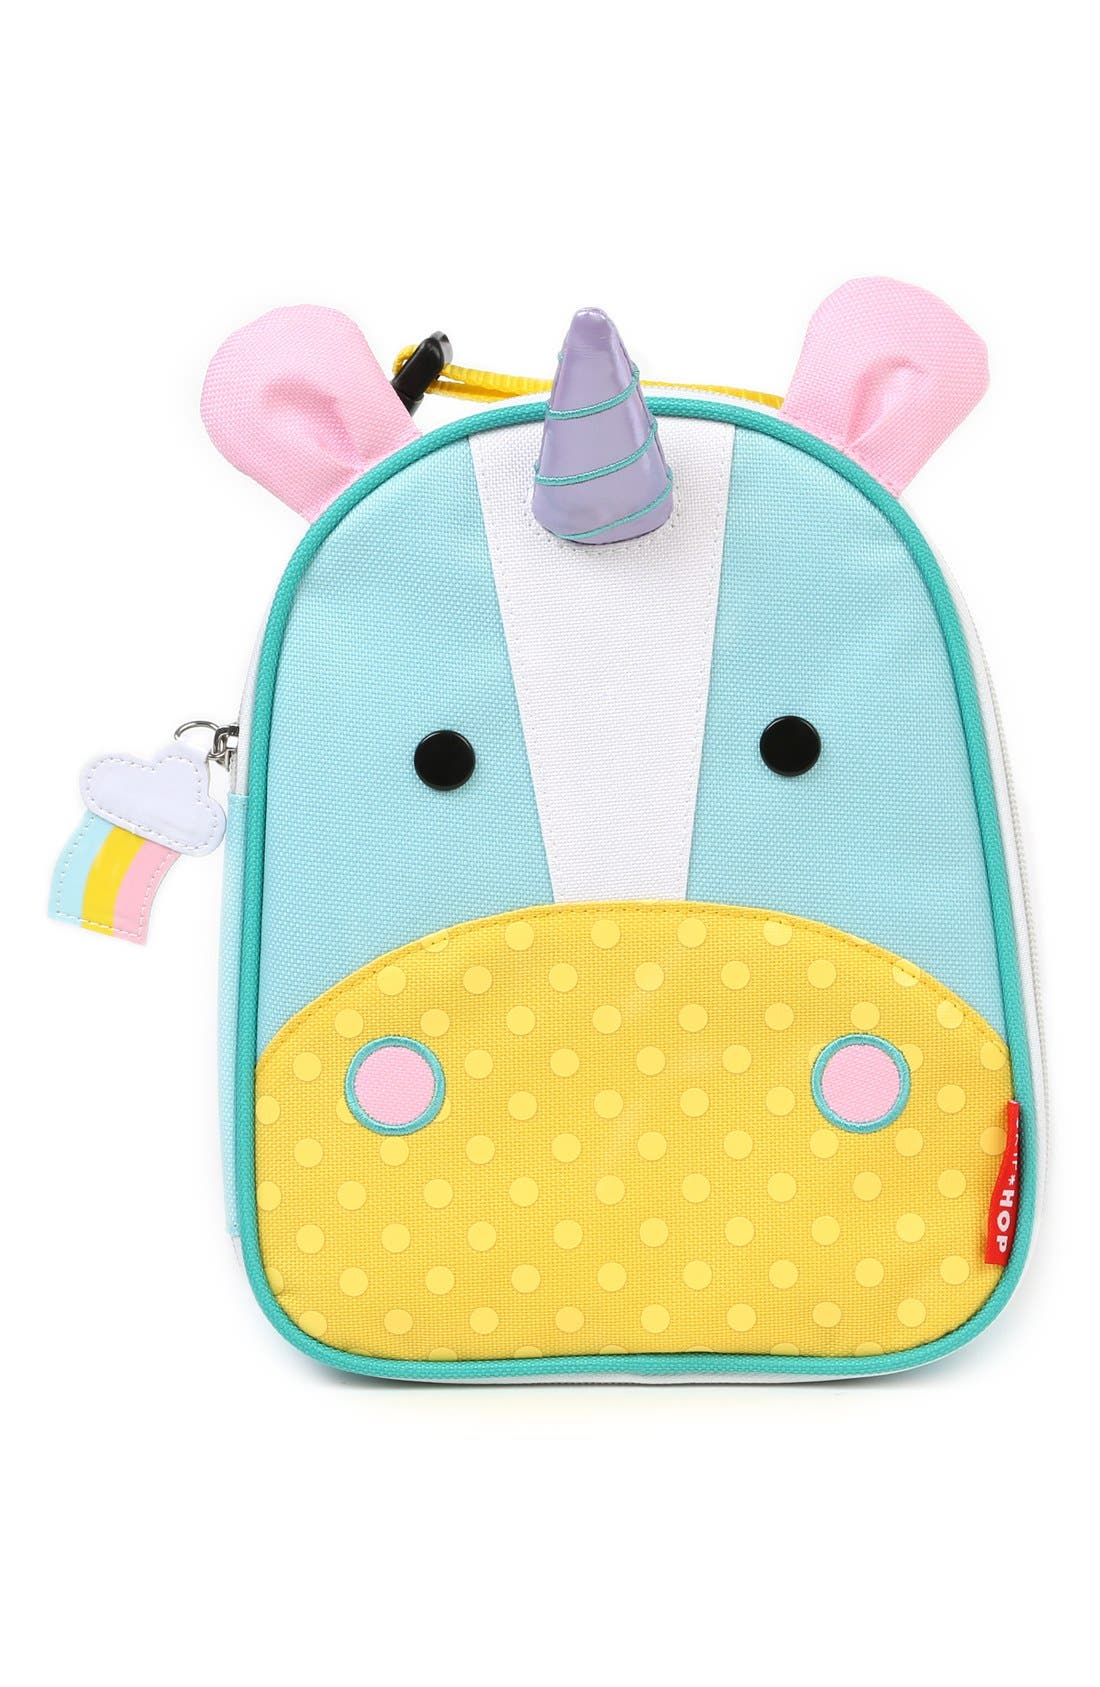 SKIP HOP, 'Zoo Lunchie - Unicorn' Insulated Lunch Bag, Main thumbnail 1, color, UNICORN